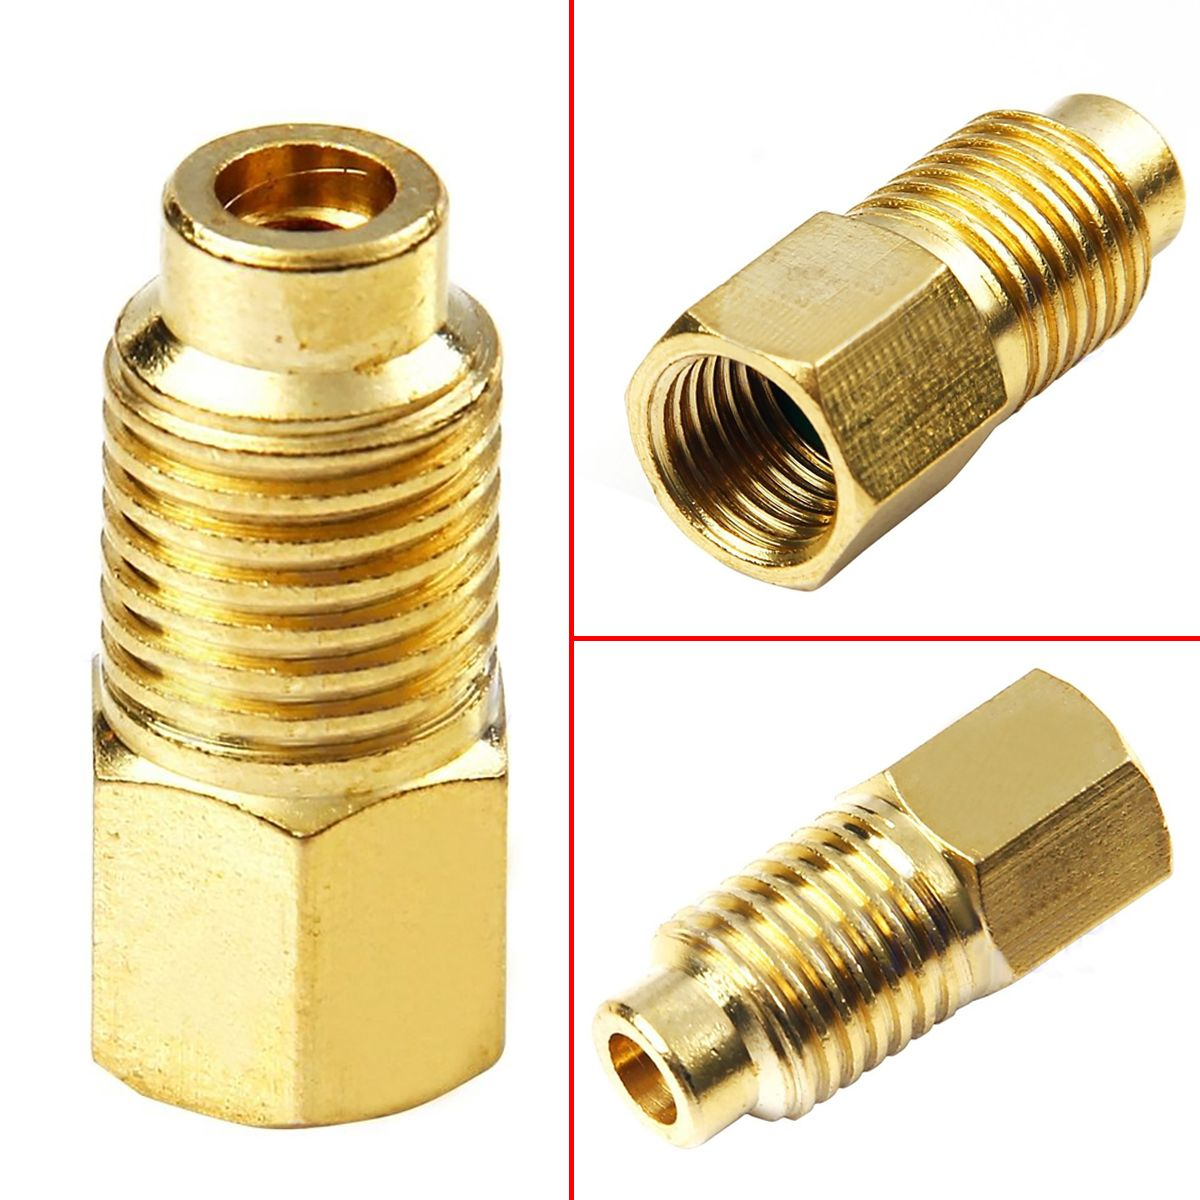 1PC Mayitr R12 To R134a Brass Fitting Adapter Screw Thread 1/4